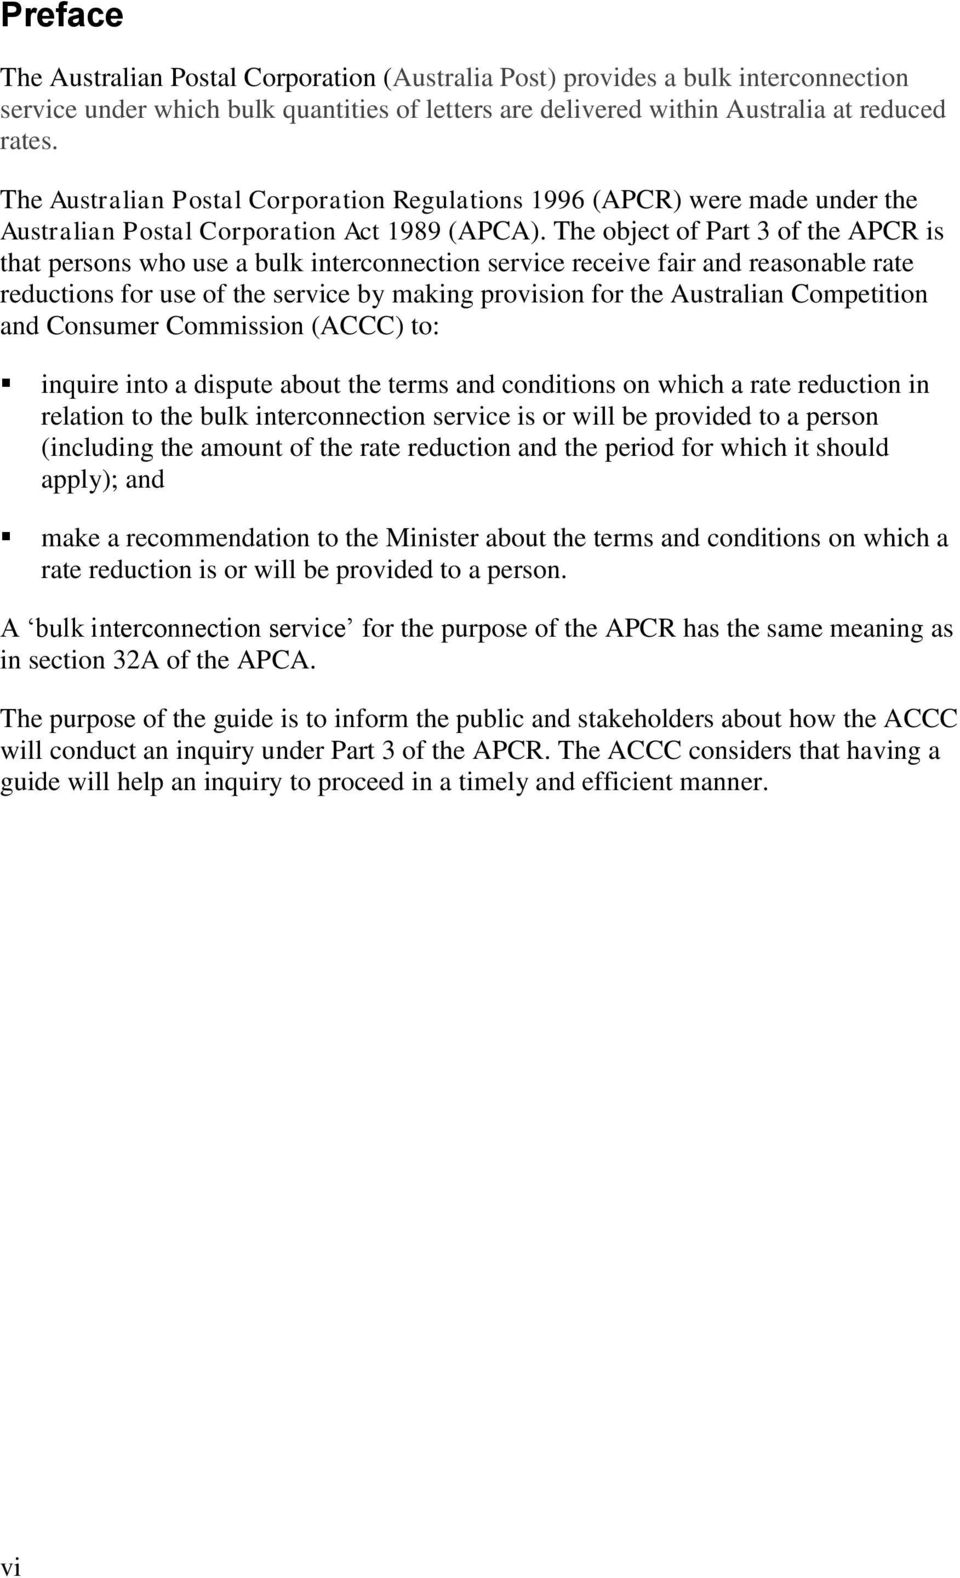 The object of Part 3 of the APCR is that persons who use a bulk interconnection service receive fair and reasonable rate reductions for use of the service by making provision for the Australian